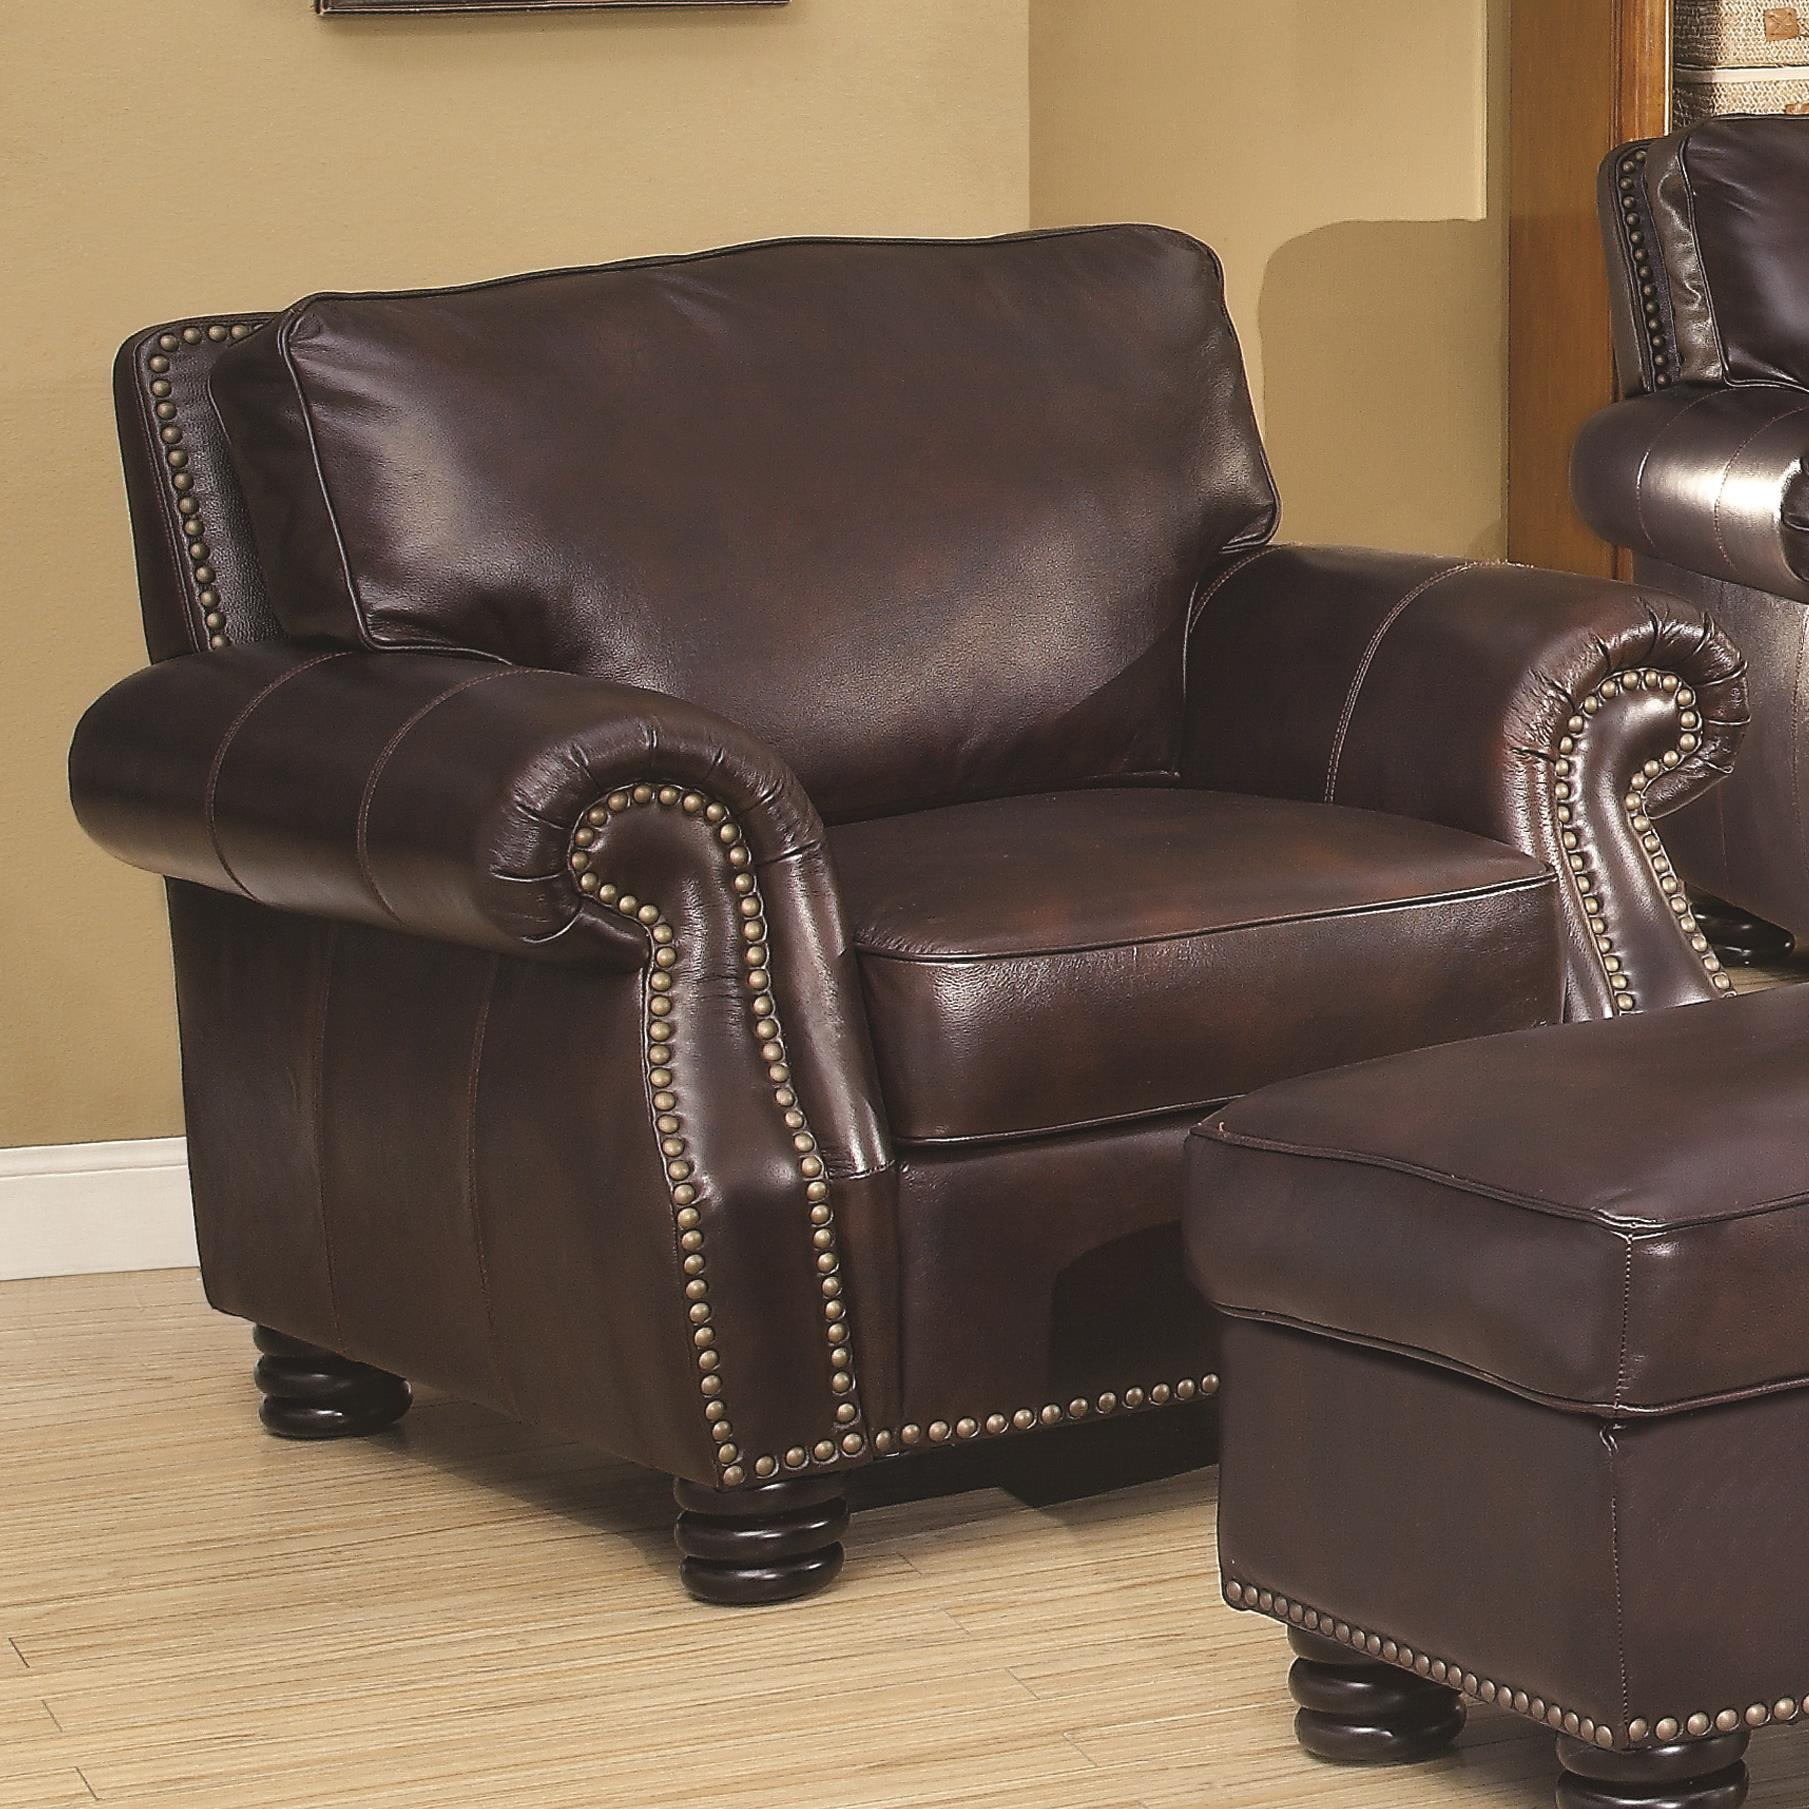 Briscoe By Coaster 100 Leather Chair With Traditional Style Quality Furniture At Affordable